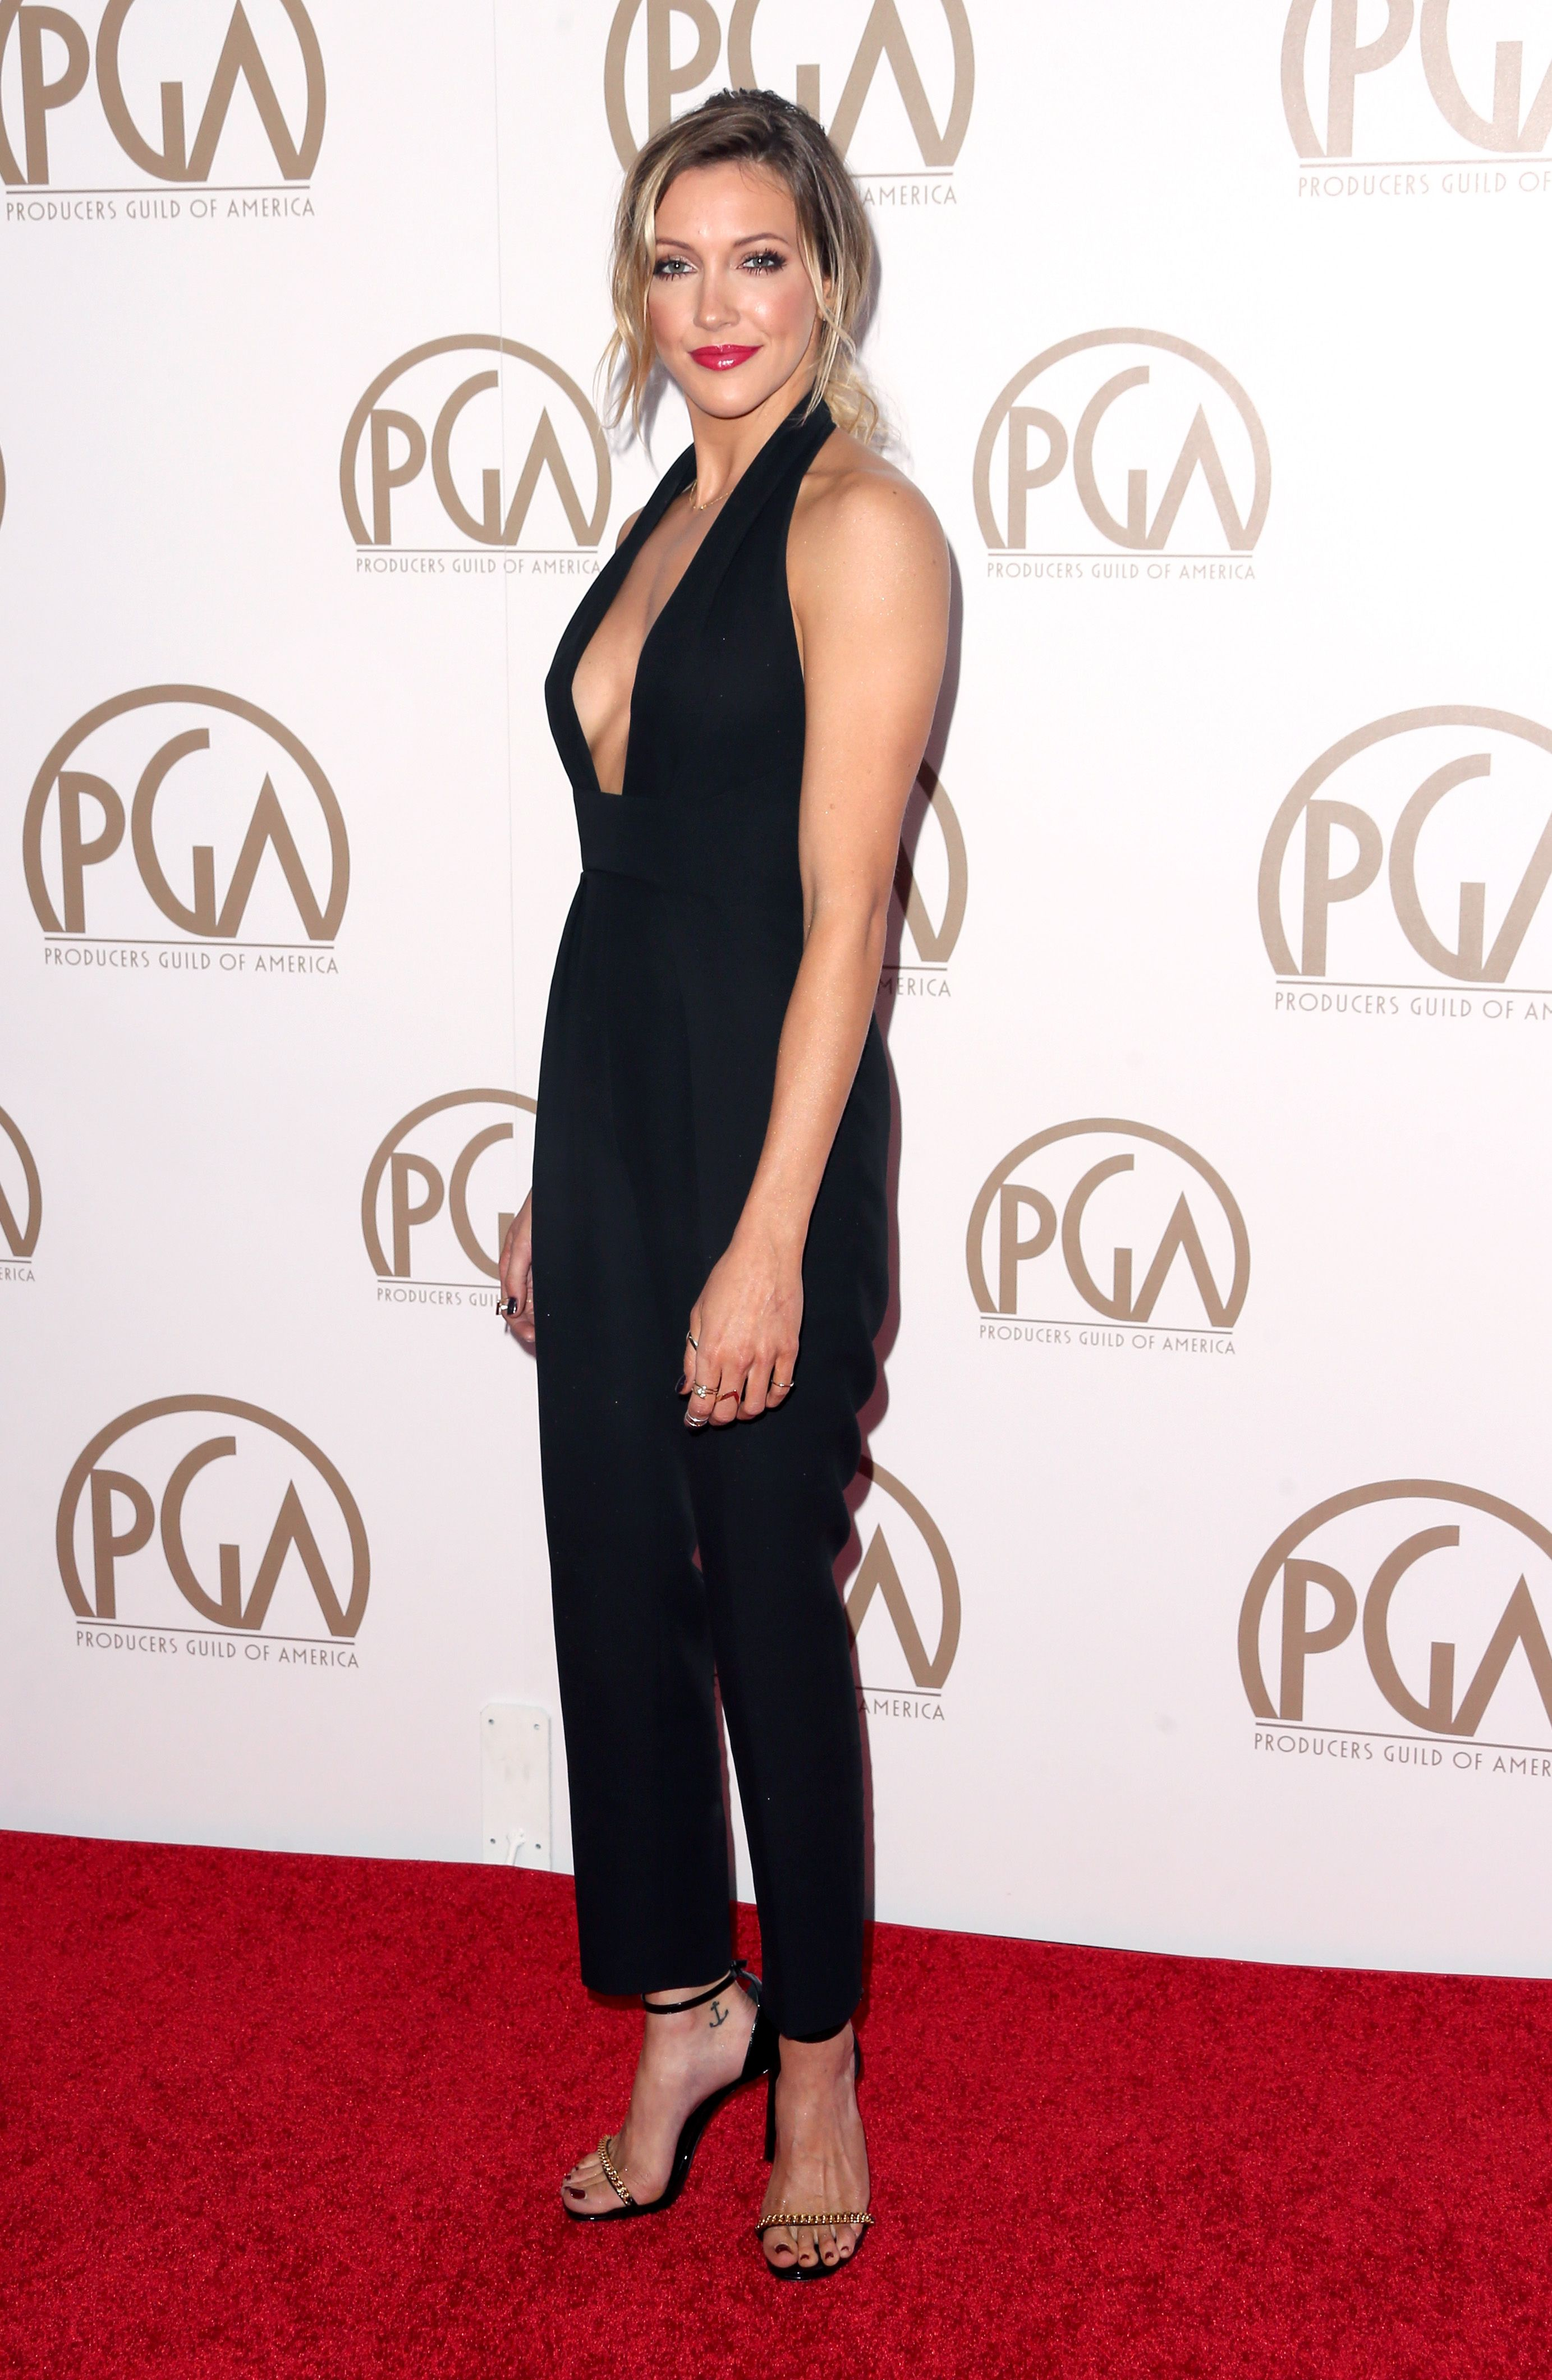 Roter Teppich Los Angeles Katie Cassidy At The Annual Producers Guild Of America Awards In